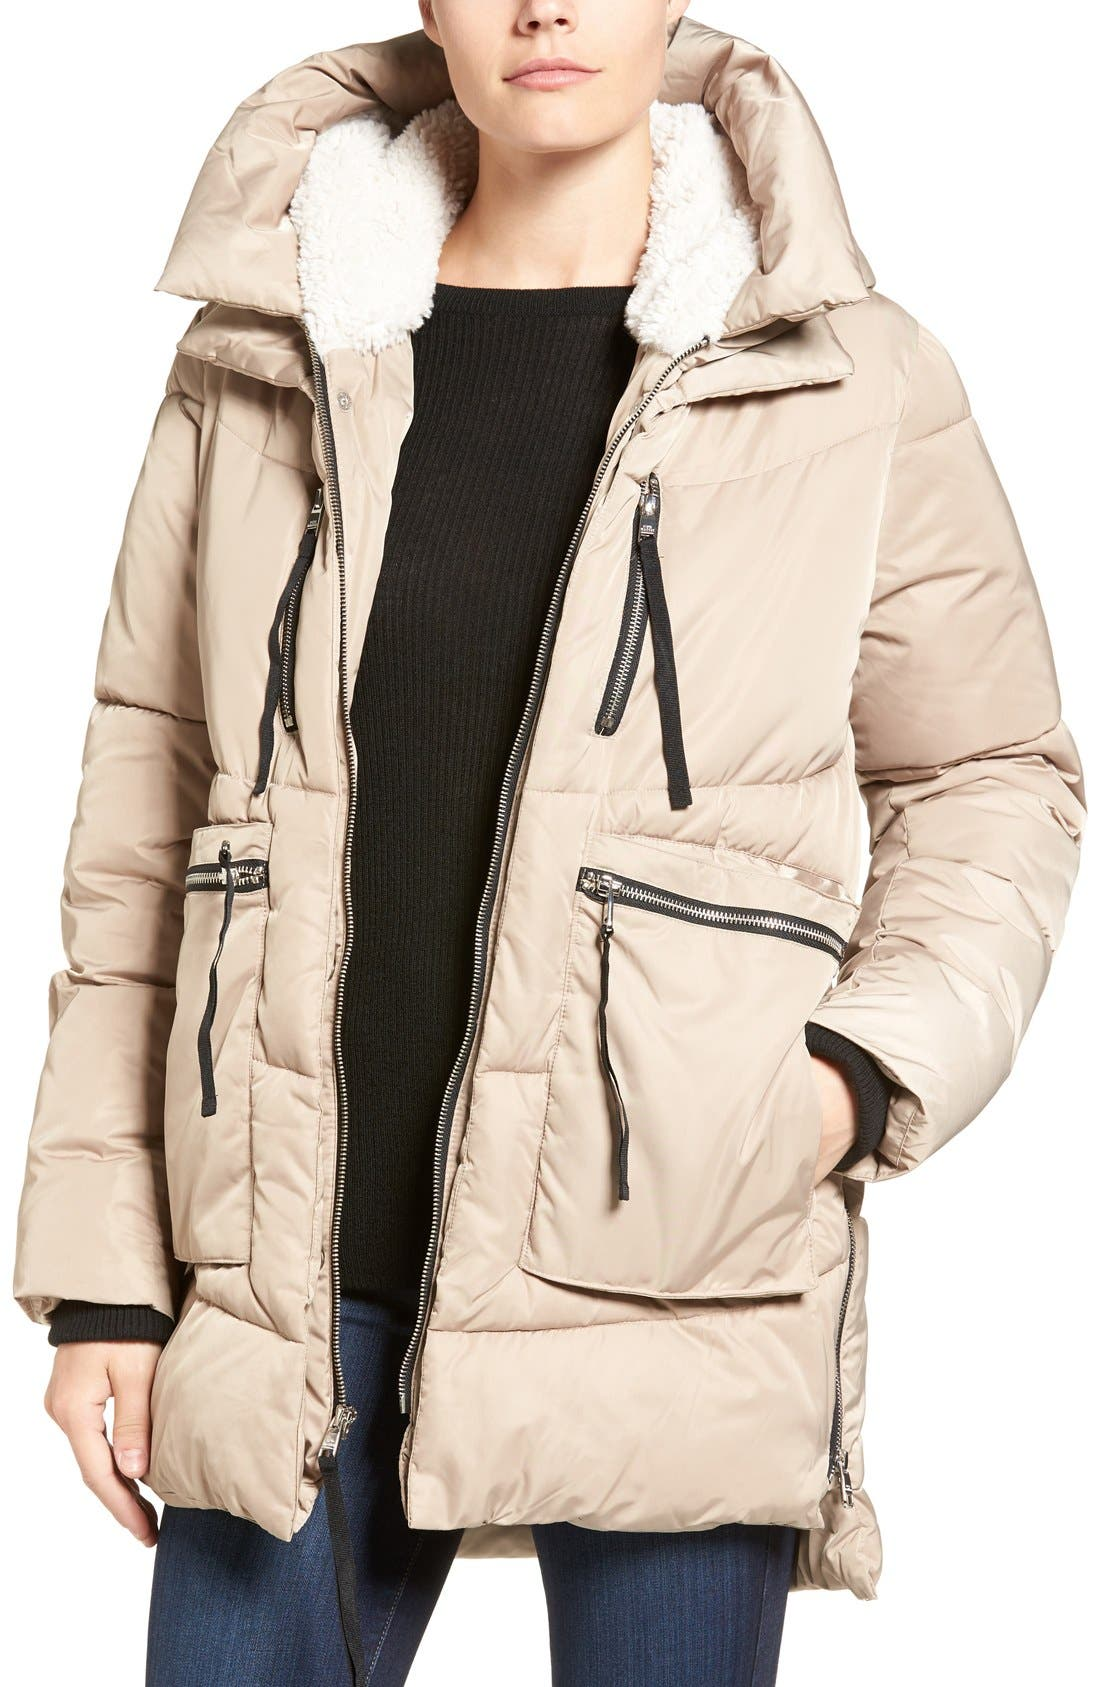 Hooded Puffer Jacket with Faux Shearling Trim,                             Main thumbnail 1, color,                             Sand